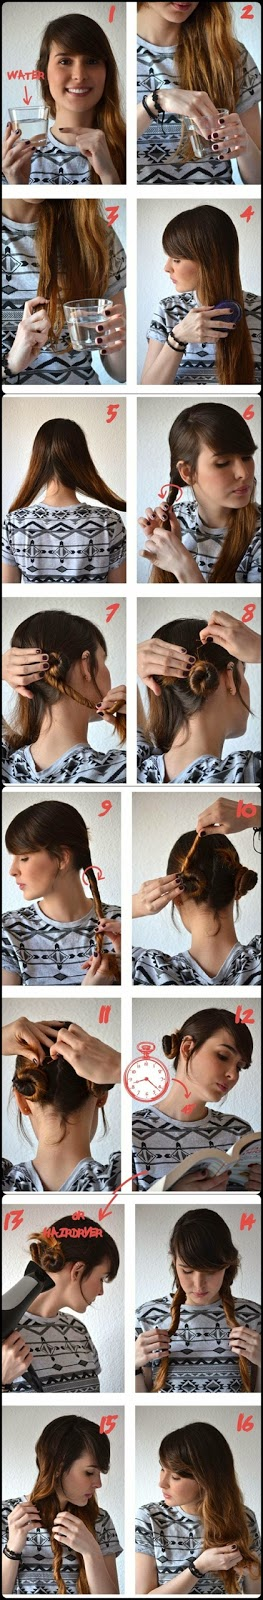 how to make youre hair beavh wavy